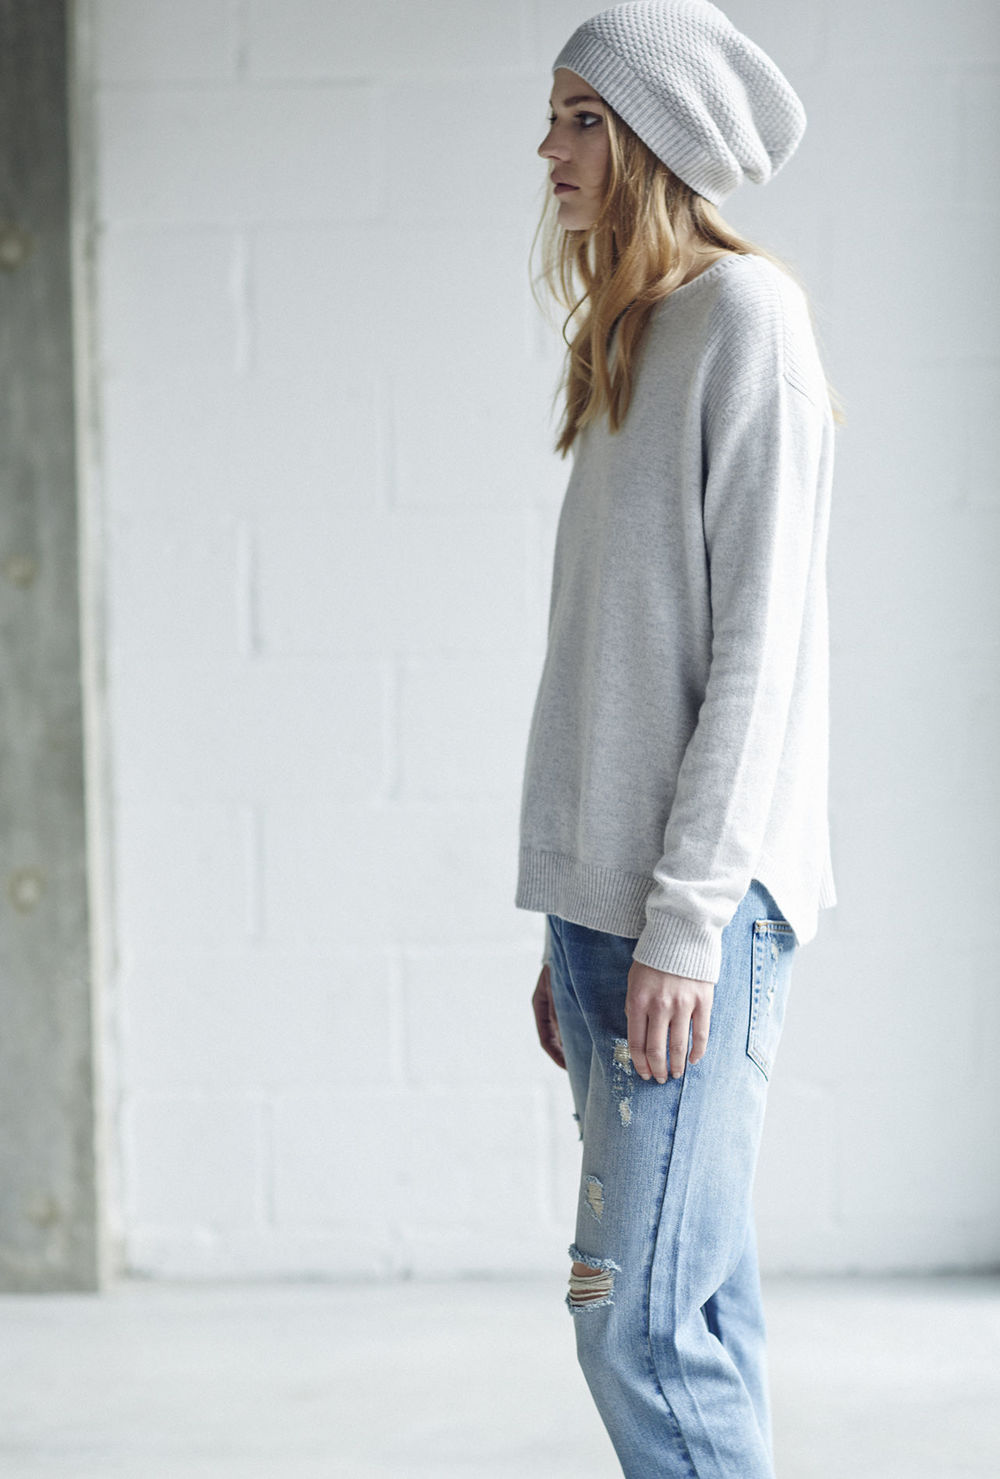 whistles_knitwear_aw14_18_004fe762500765.jpg